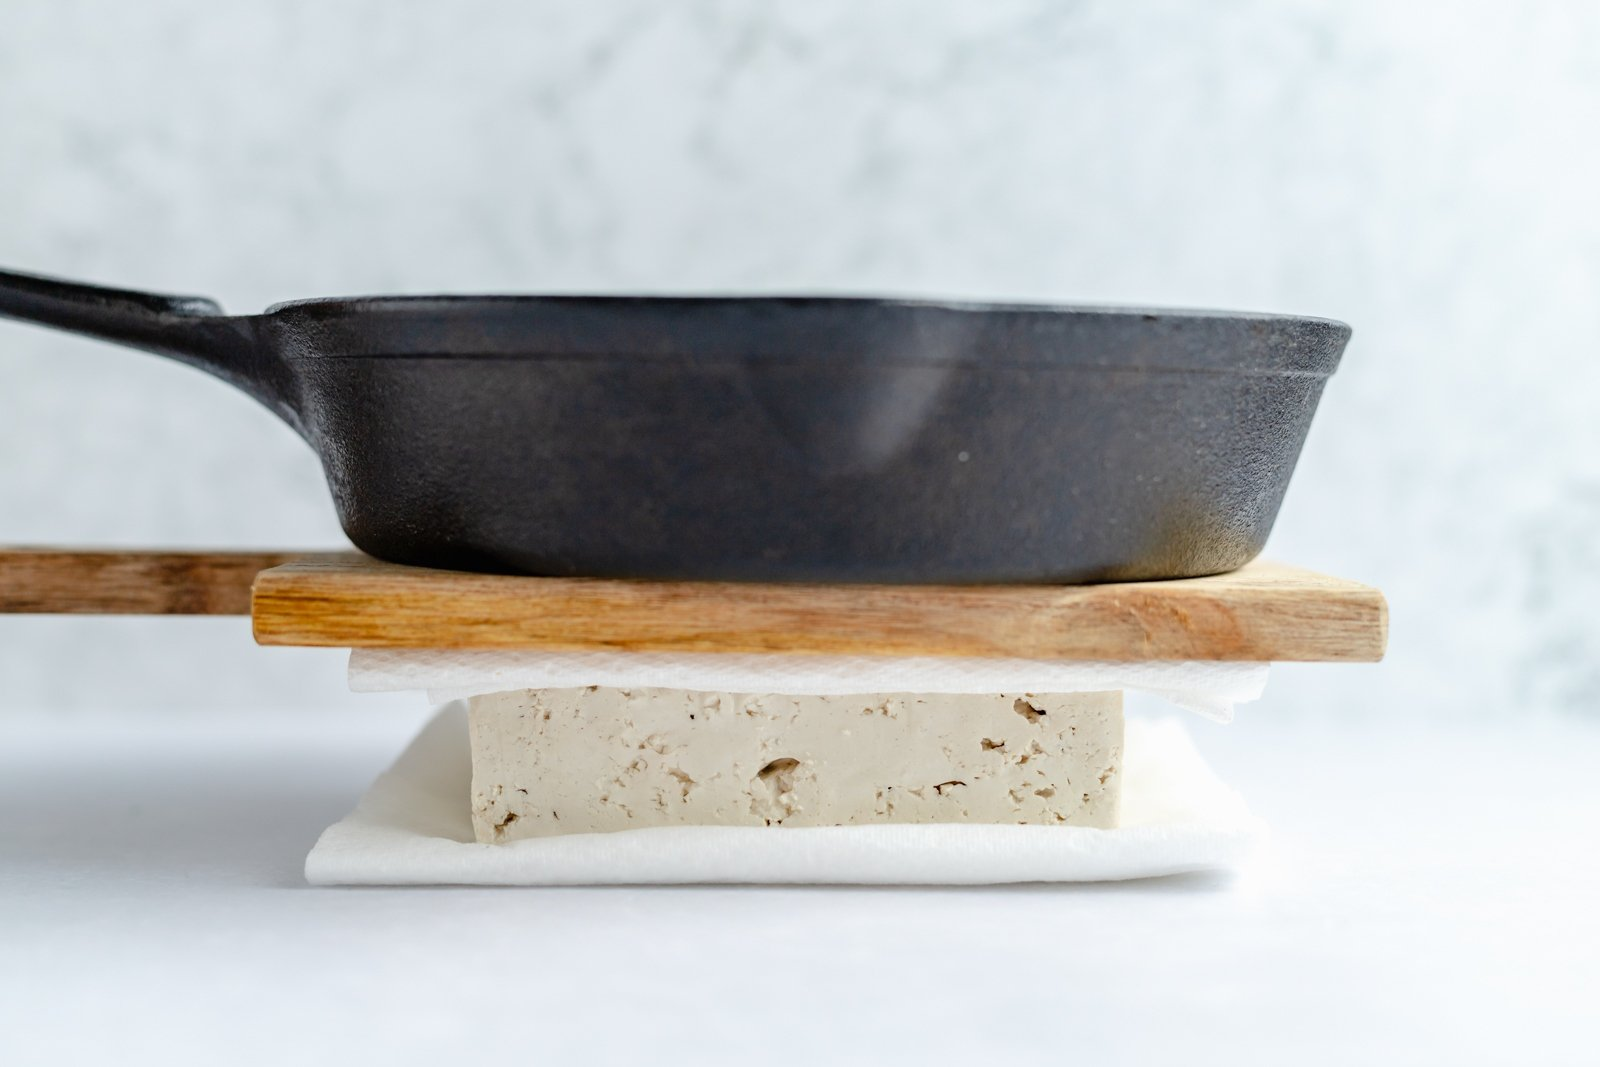 pressing tofu with a wooden board and a cast iron skillet